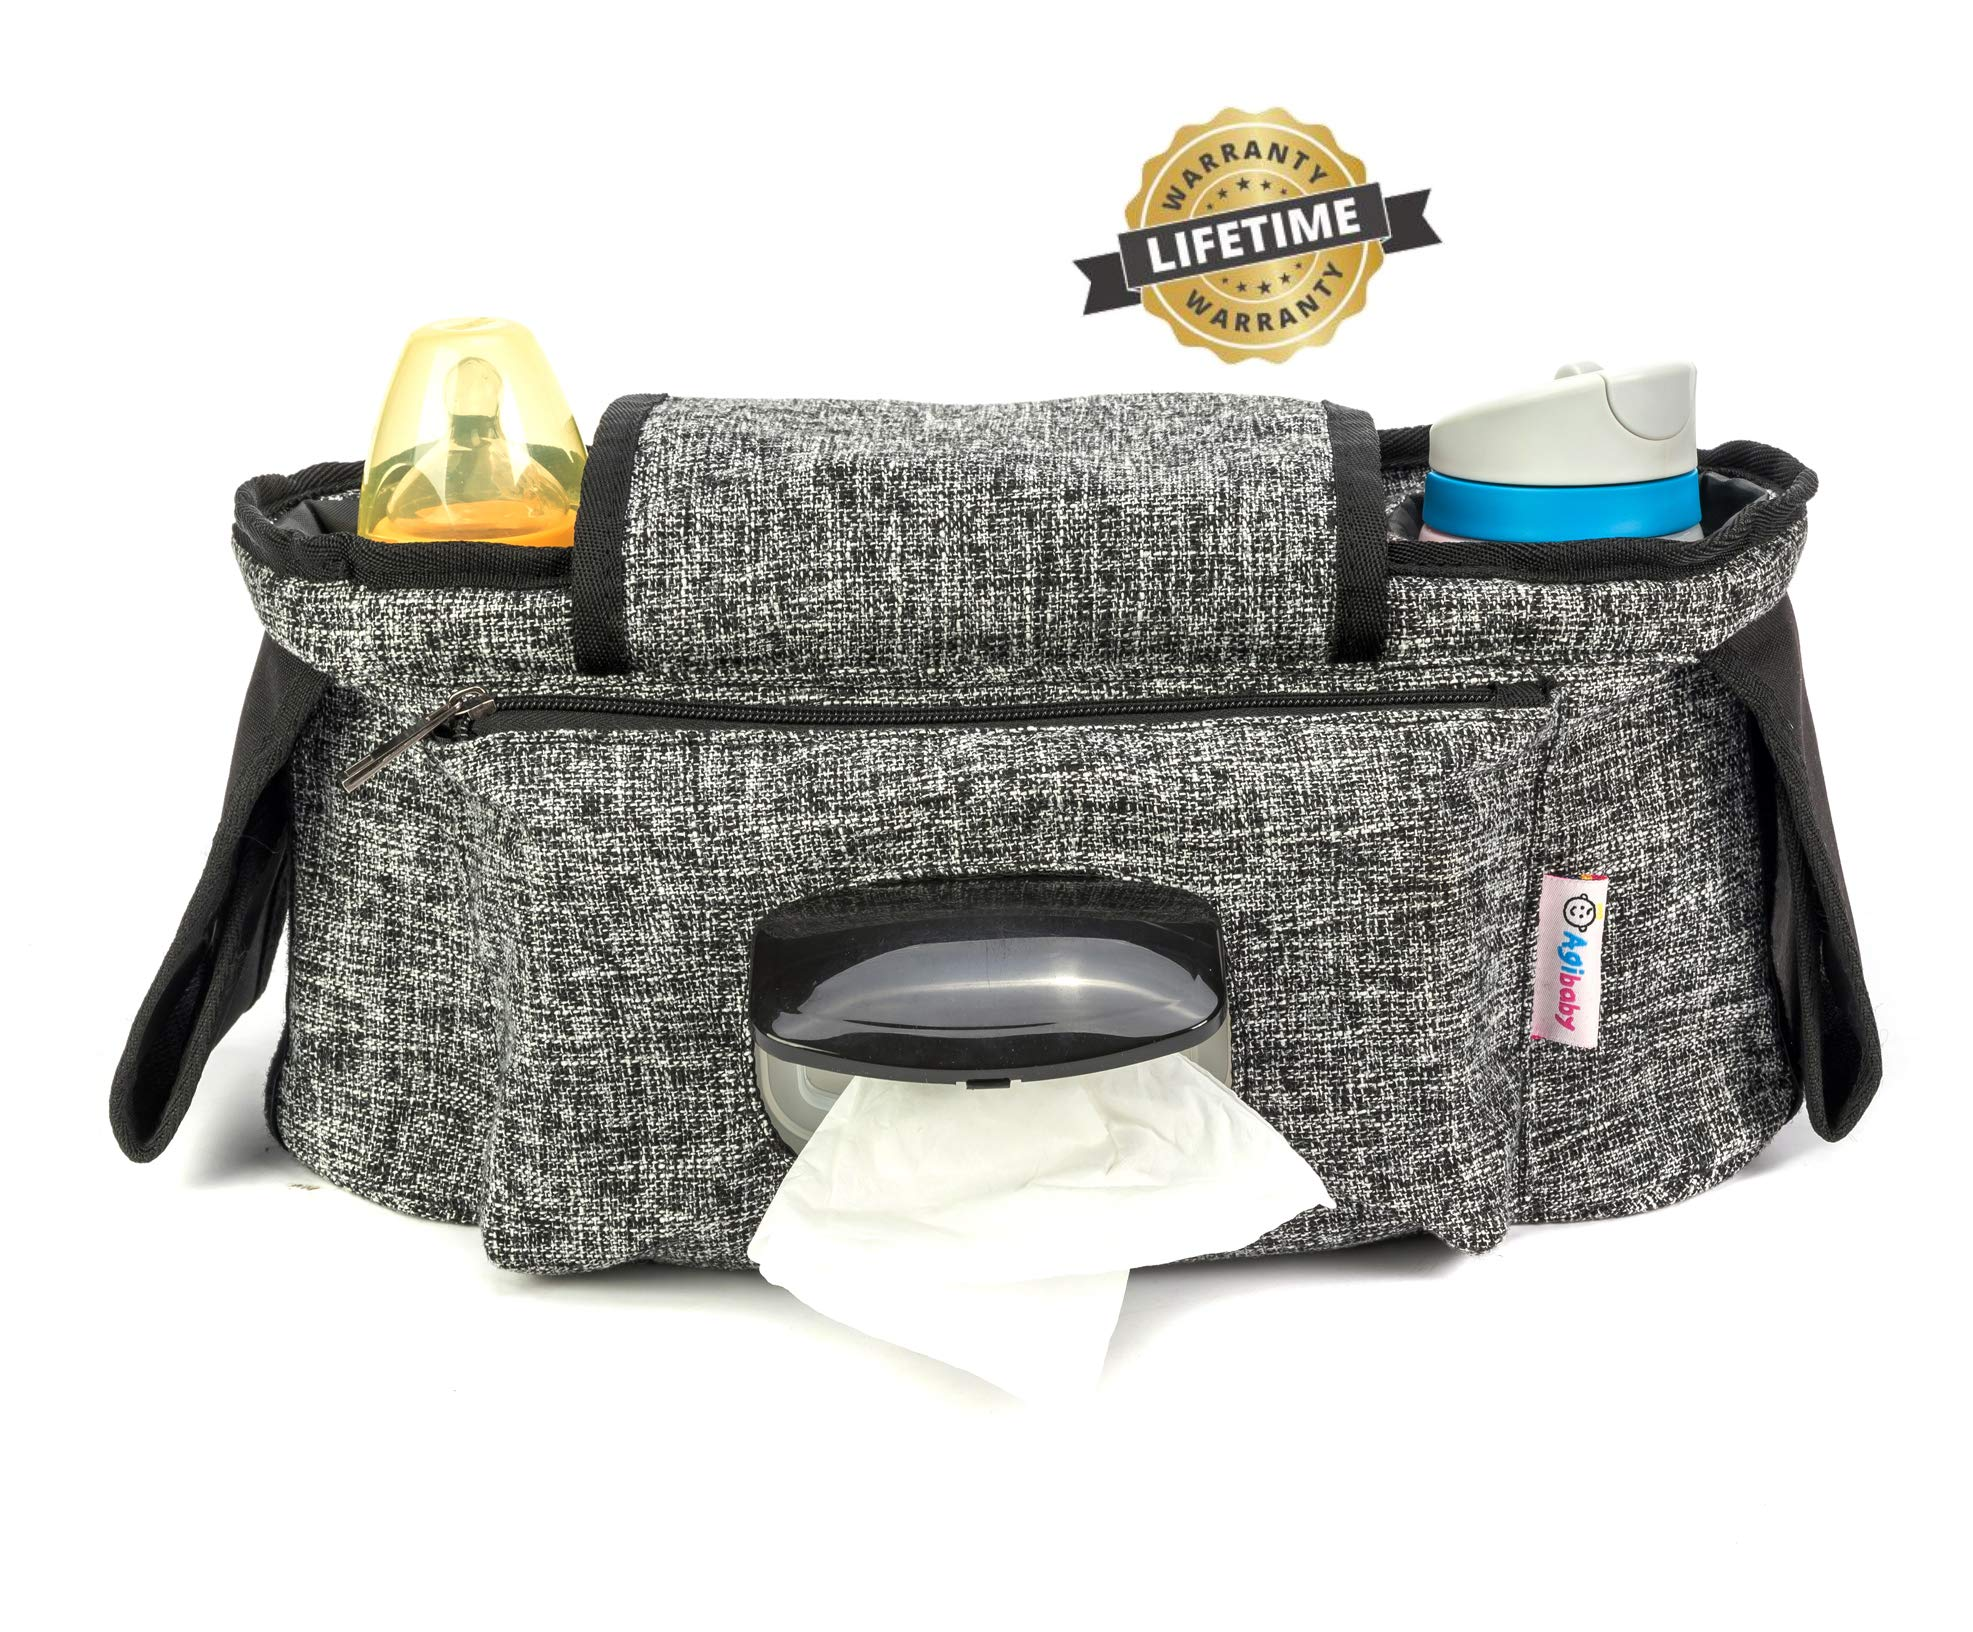 Agibaby Stroller Organizer, Insulated Deep Cup Holders, Instant Access Wipe Pocket, Universal Strap Fit, Large Storage Space by Agibaby (Image #1)